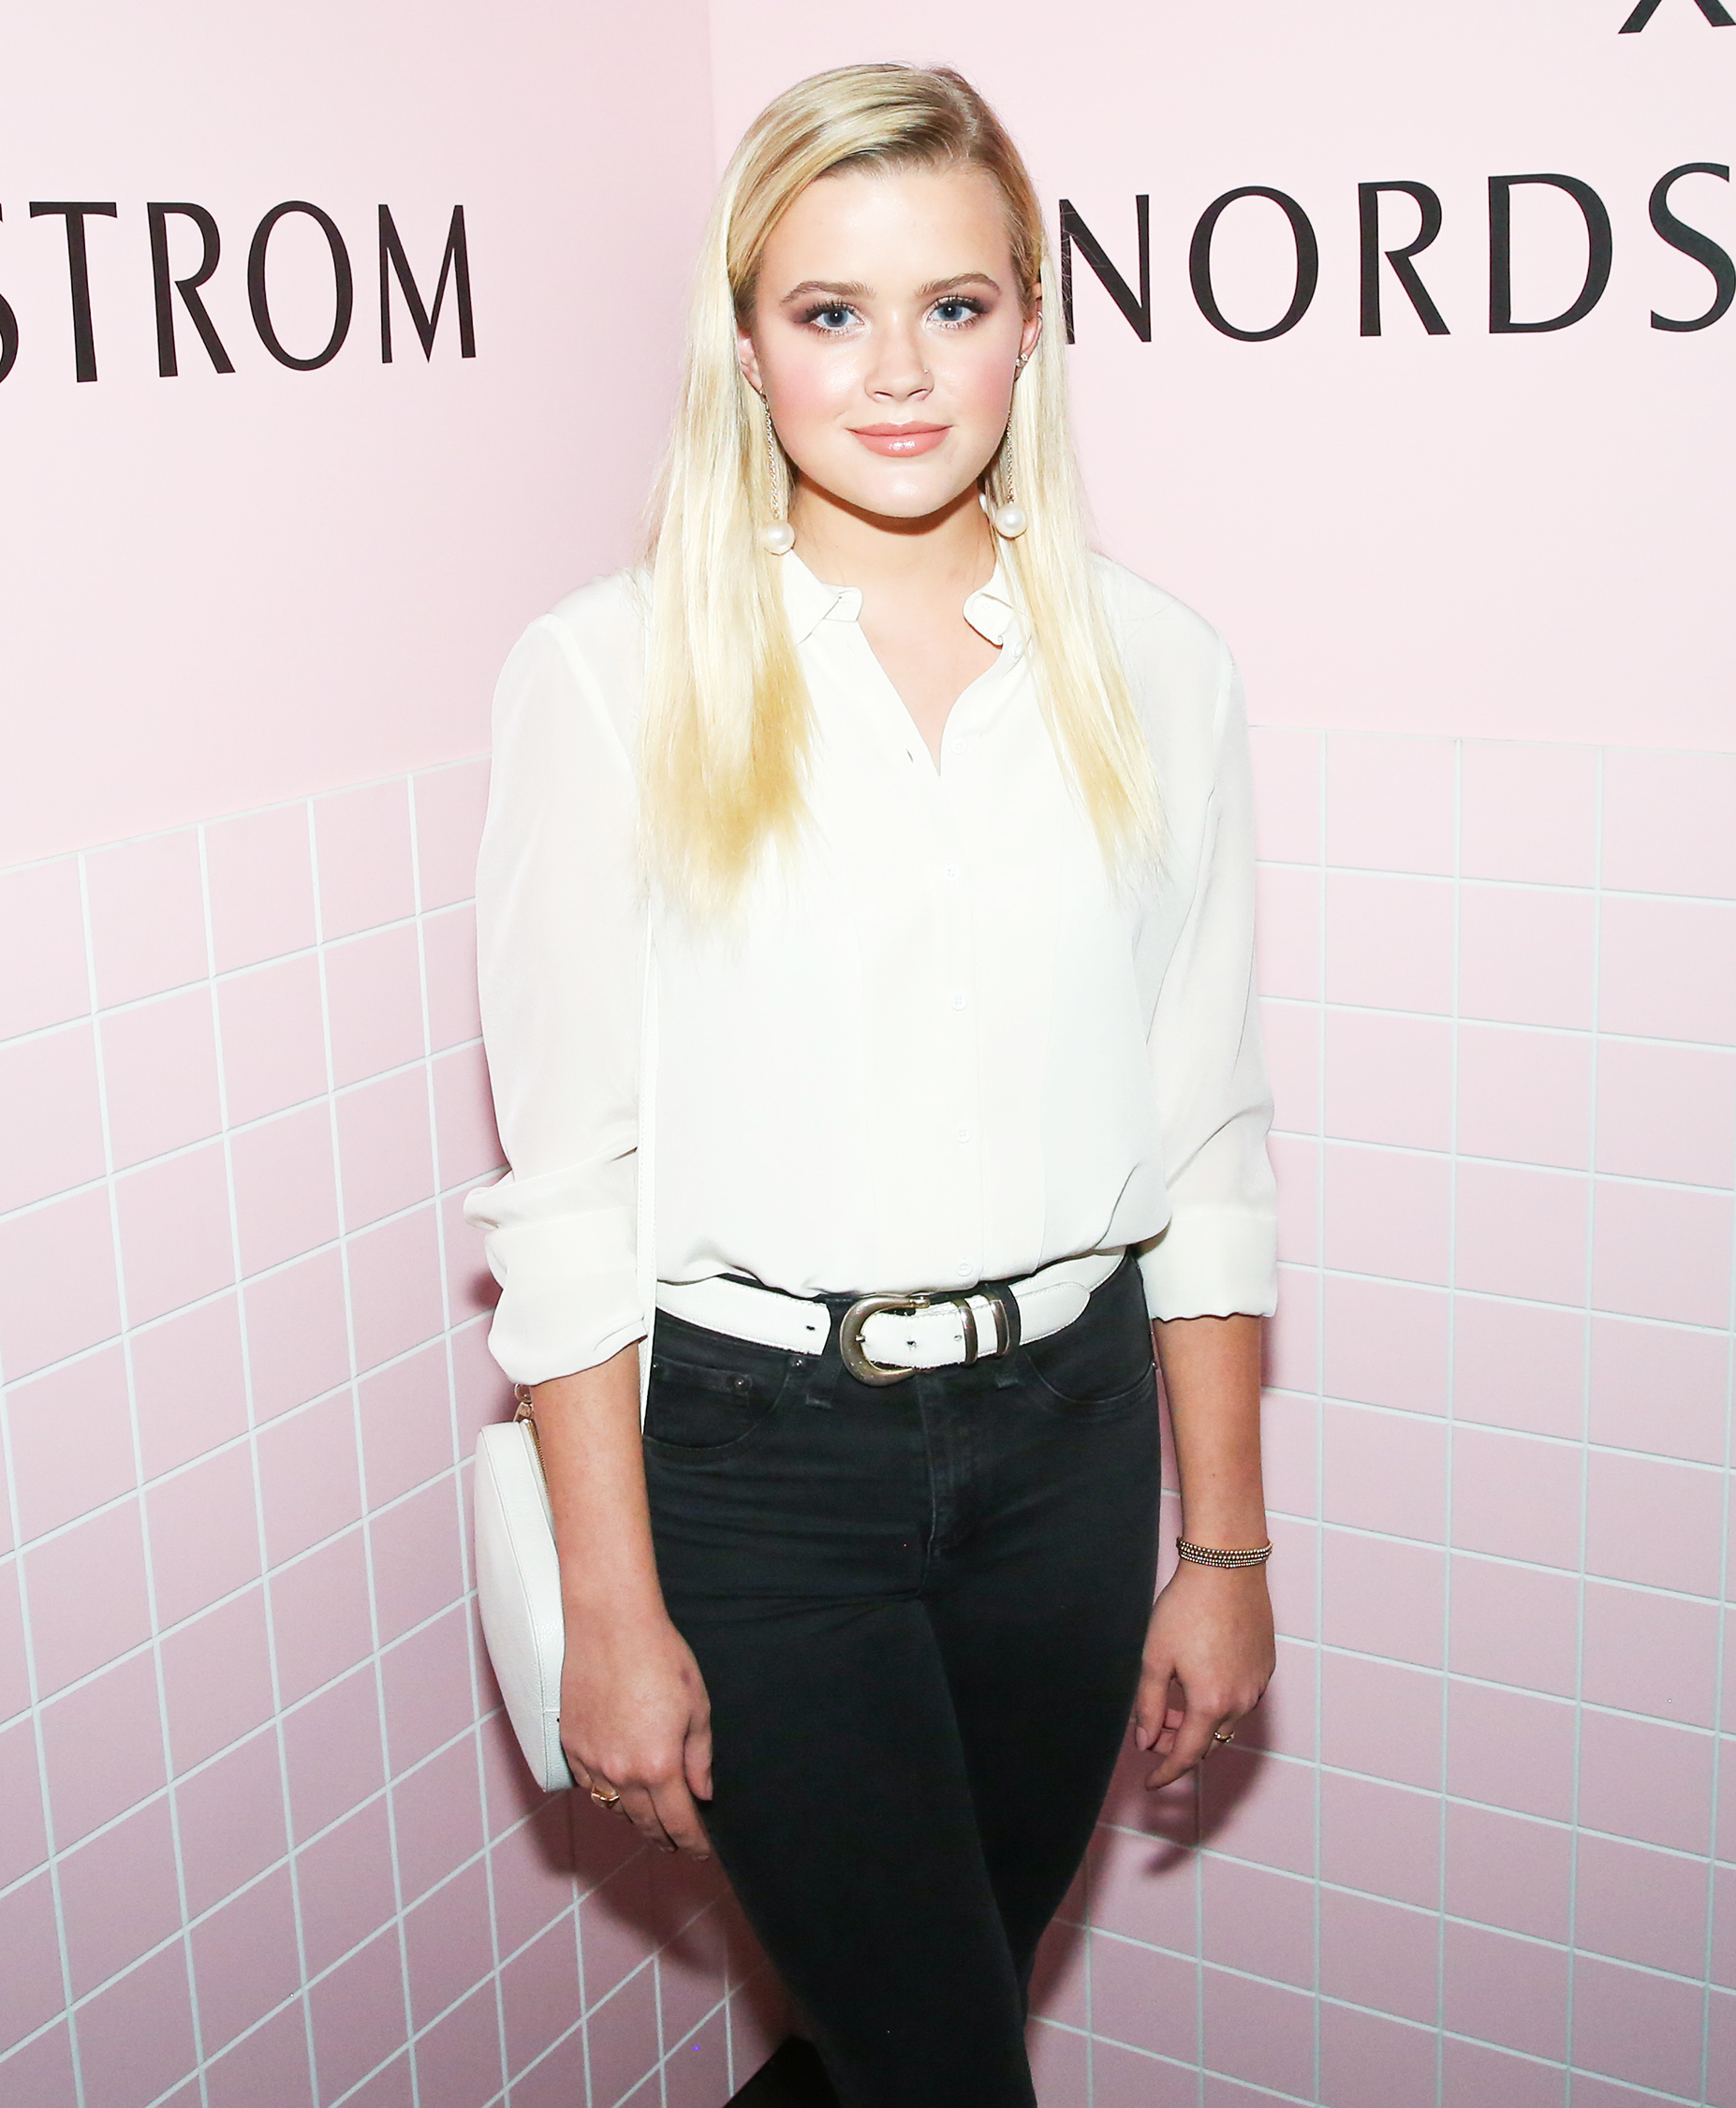 Reese Witherspoon's Daughter Ava Looks All Grown Up for a Girls' Night Out